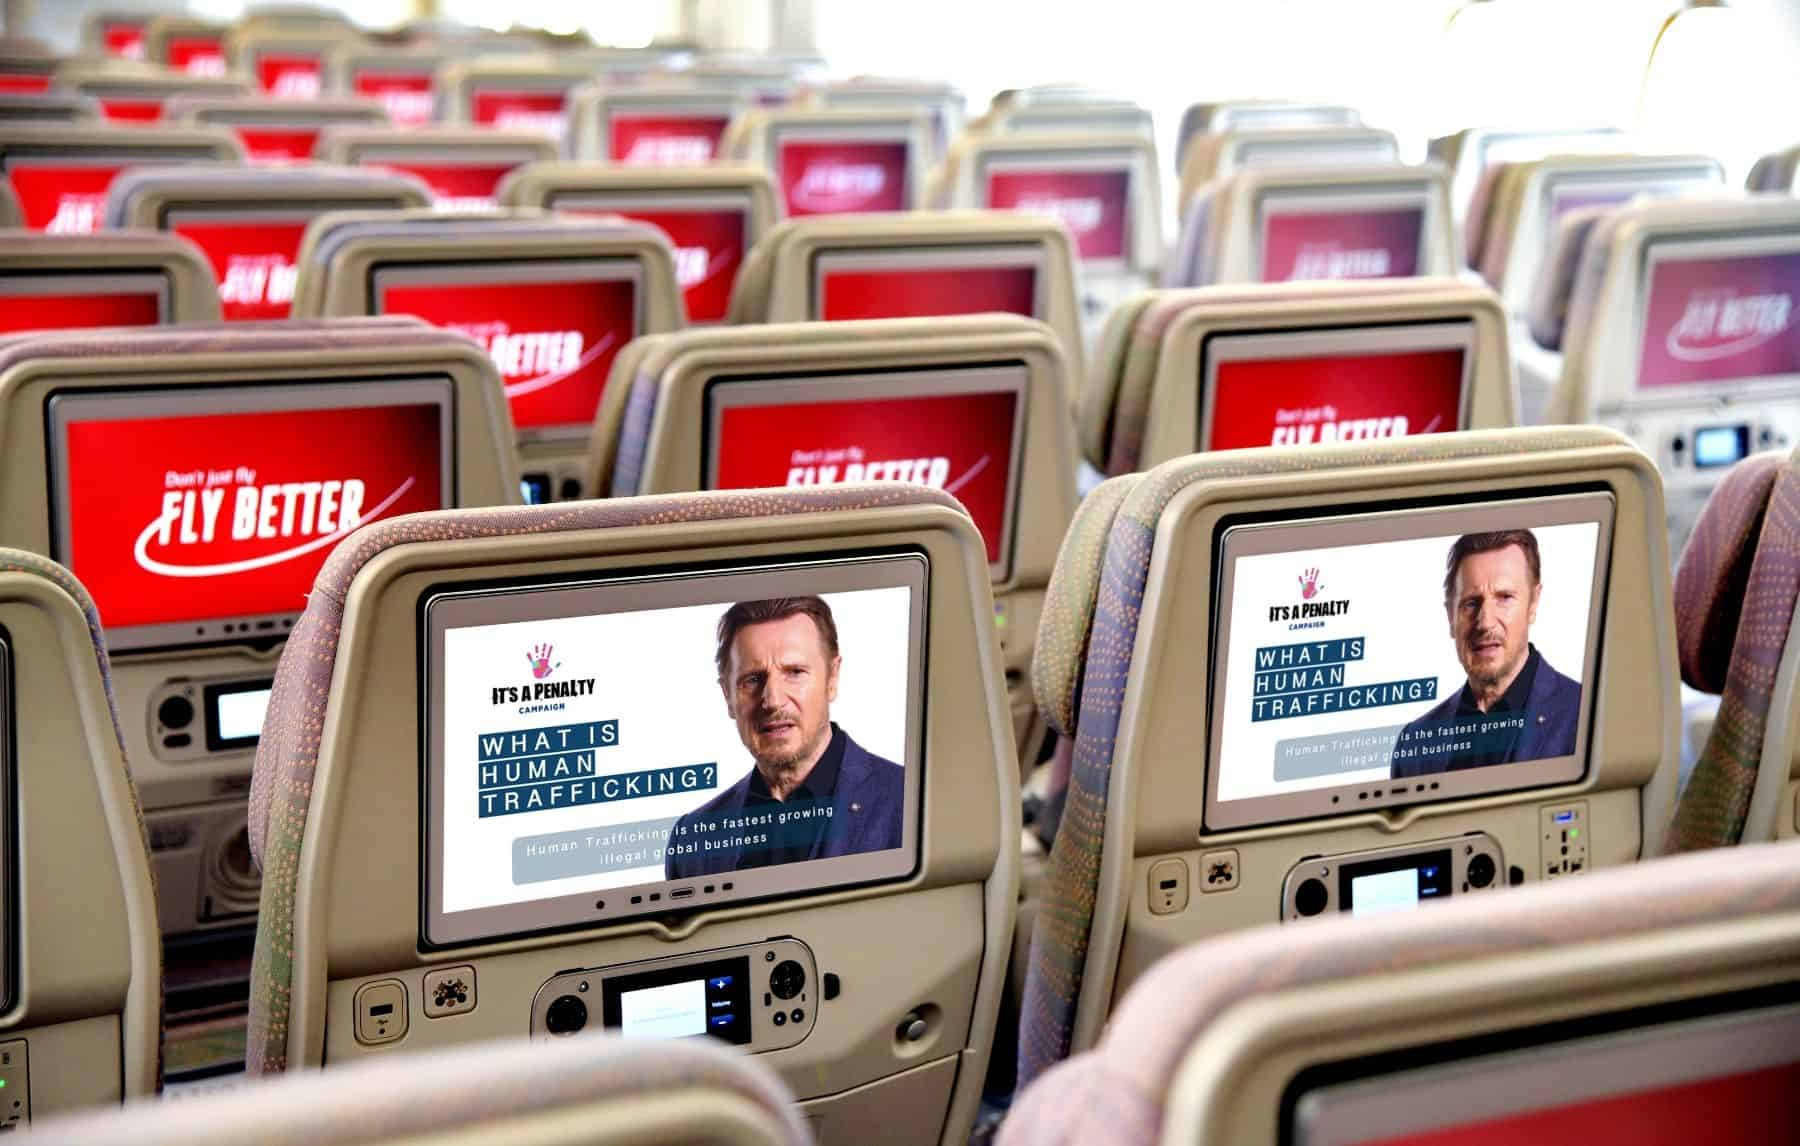 """Emirates is proud to support It's a Penalty's campaign's newest global film """"What is Human Trafficking_"""" launched in collaboration with actor Liam Neeson."""